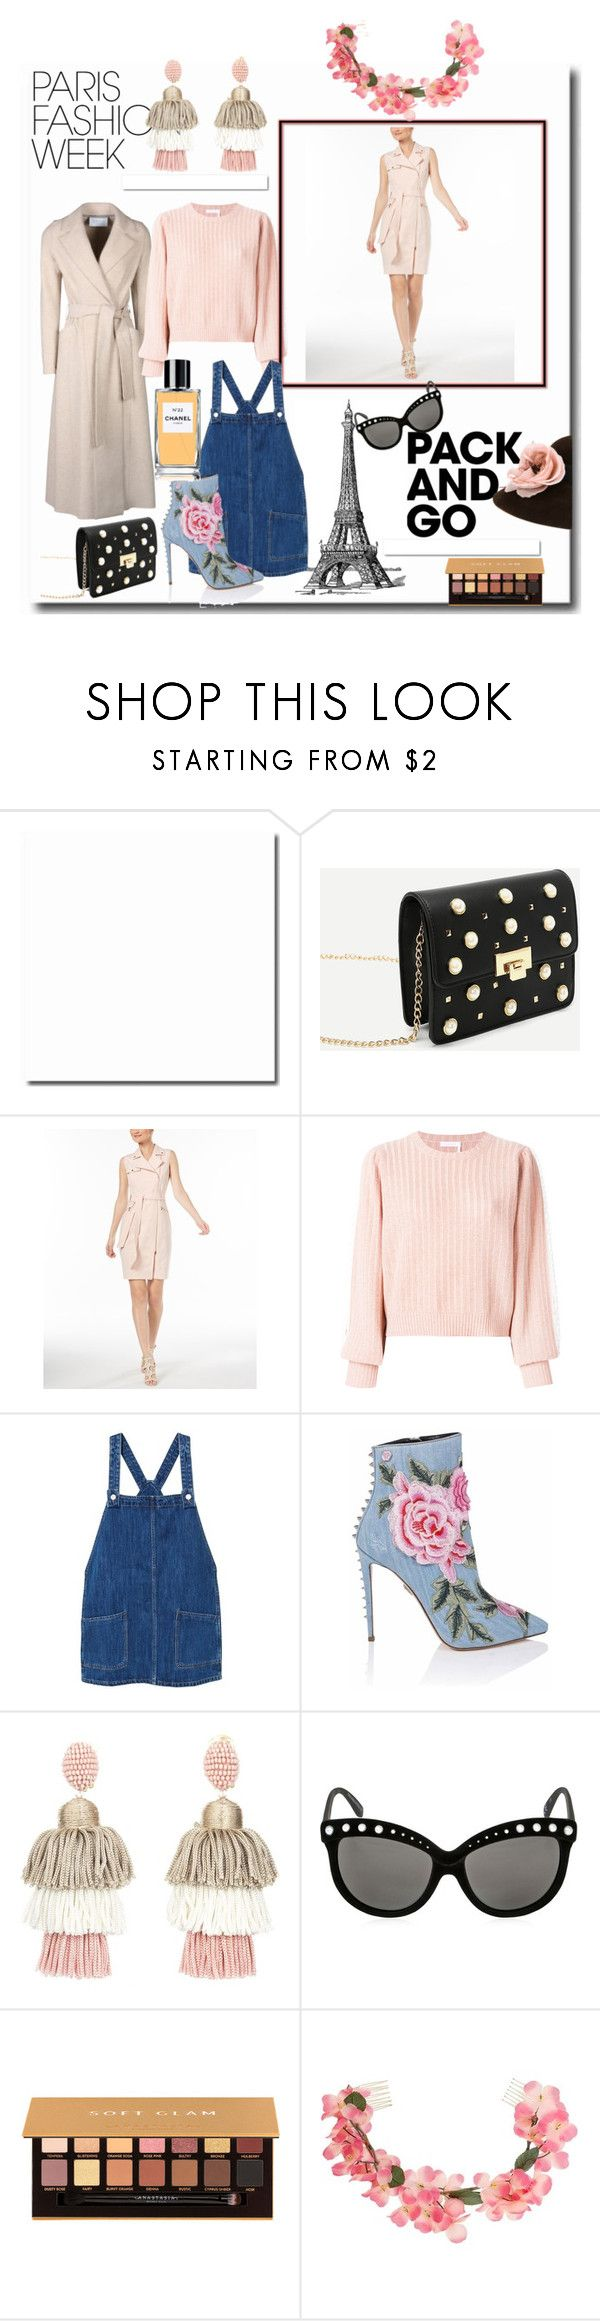 """""""It's Fashion Week!"""" by sallytcrosswell on Polyvore featuring Harris Wharf London, Calvin Klein, See by Chloé, White Label, MANGO, Oscar de la Renta, Italia Independent, Anastasia Beverly Hills, Miss Selfridge and Chanel"""